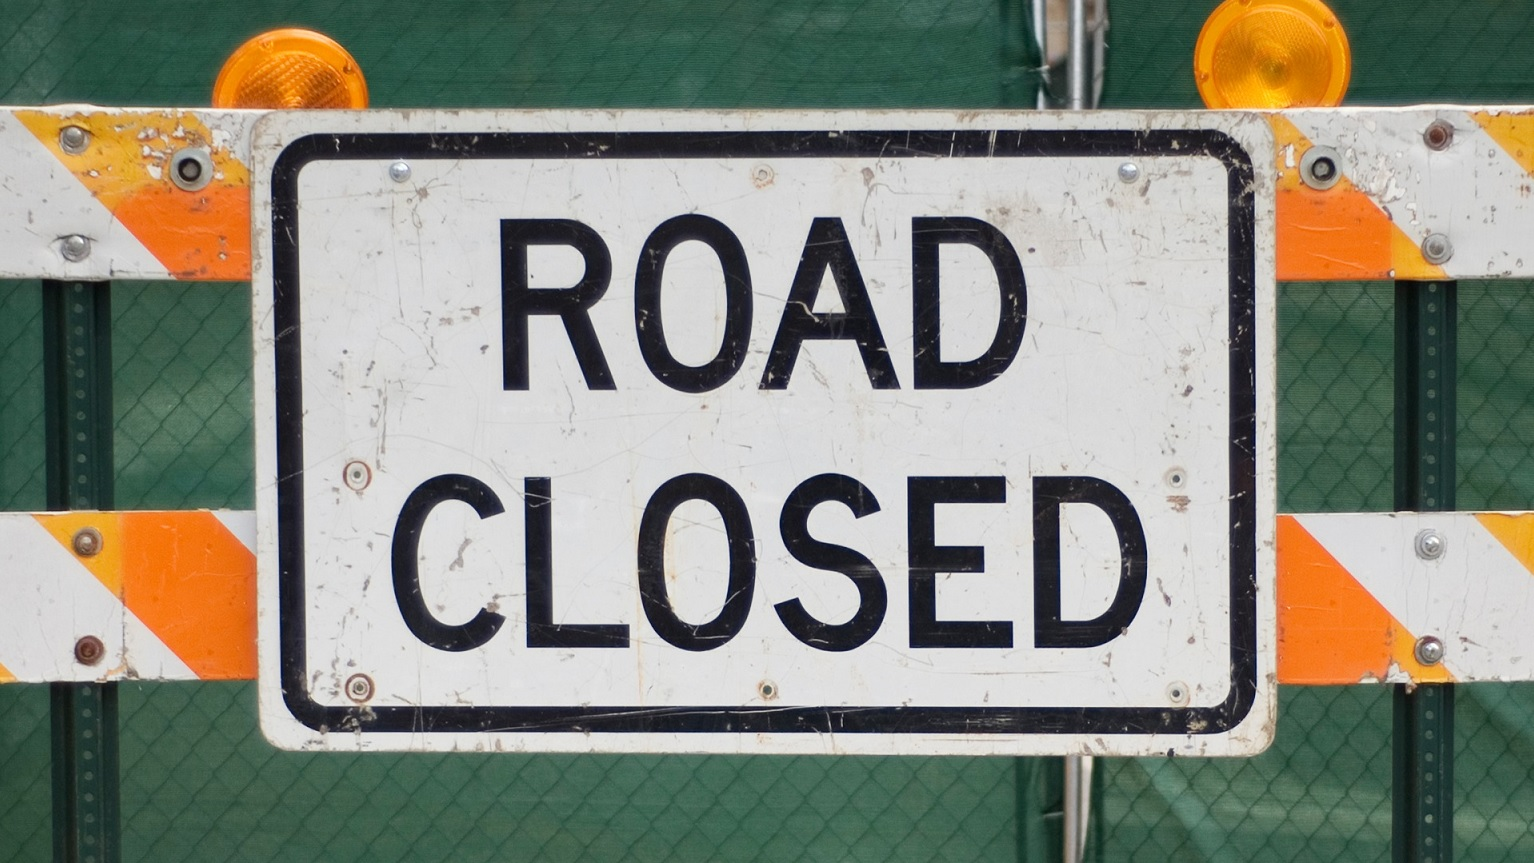 Road Closed_165669